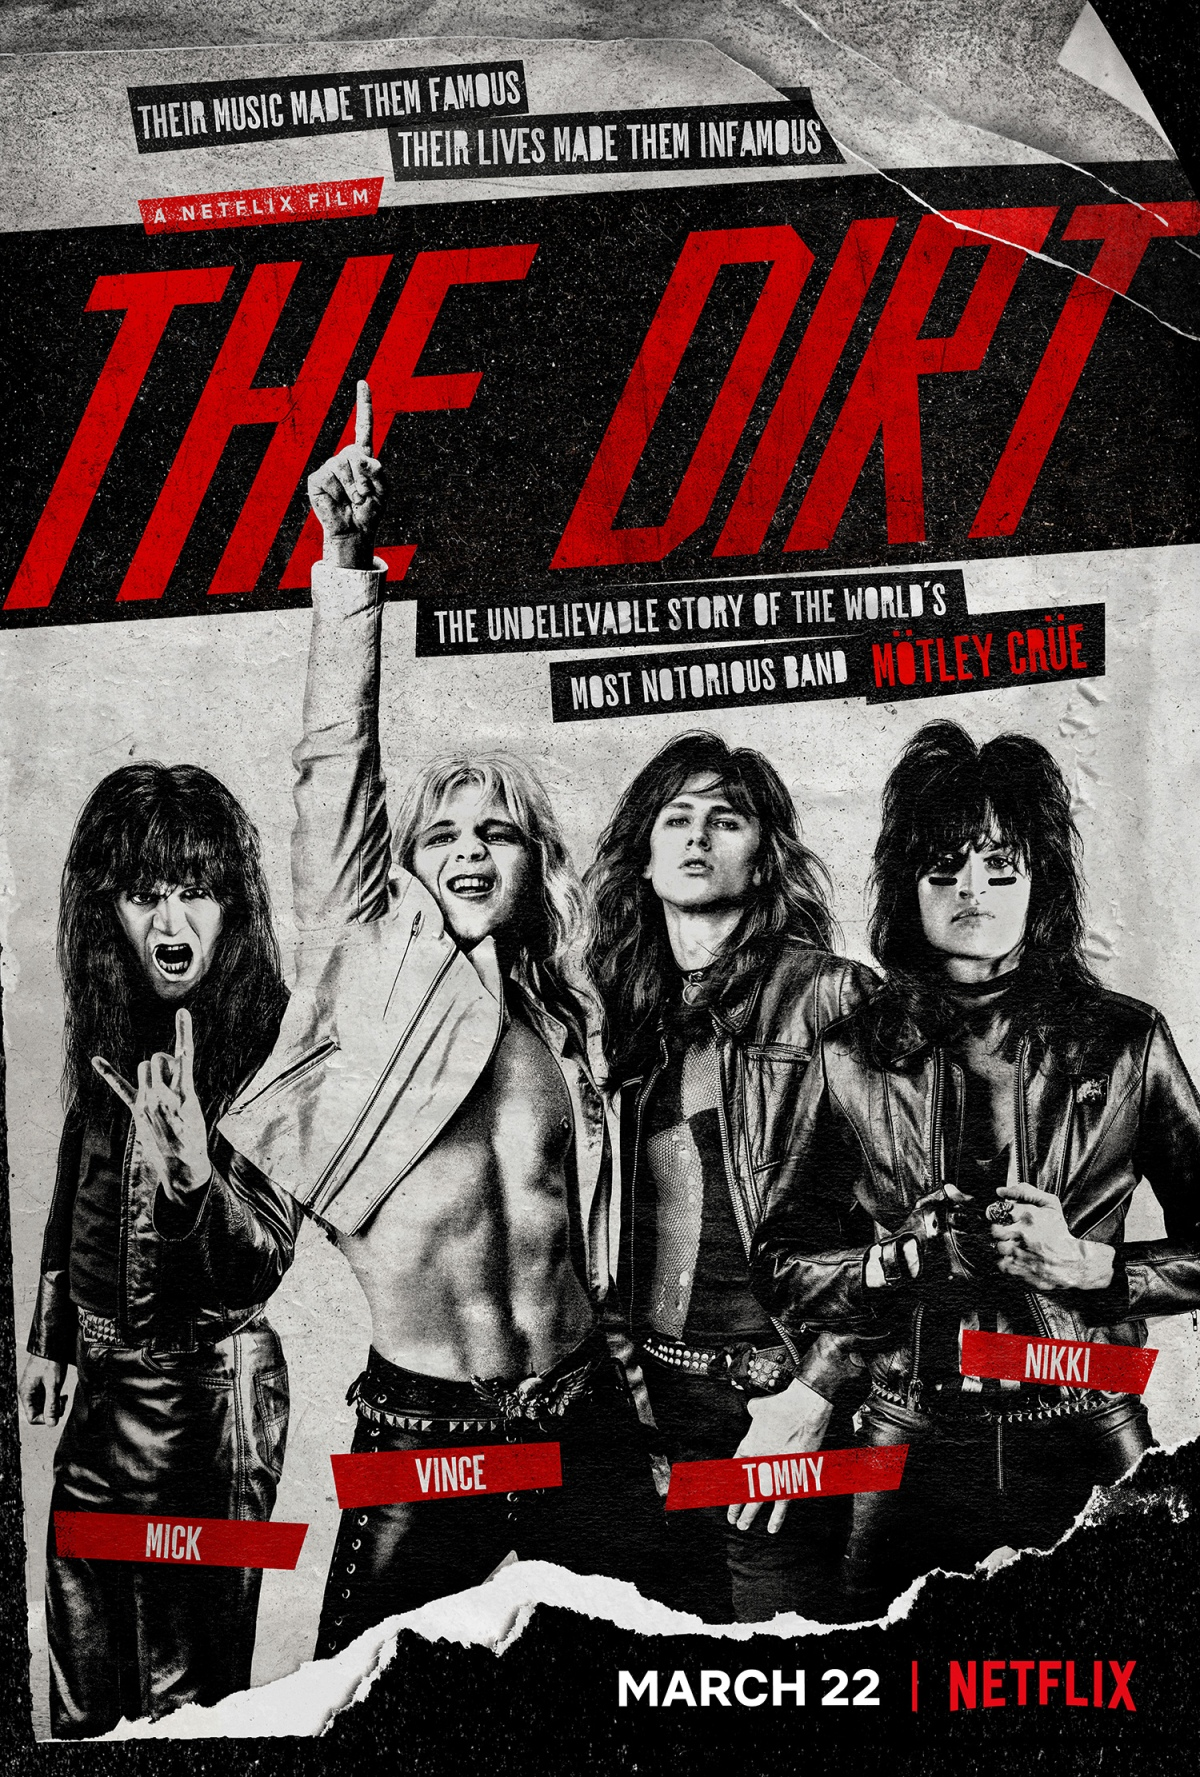 Tales of Rock – MÖTLEY CRÜE Movie 'The Dirt' Is Hated By Critics, Loved By Fans, Says NIKKISIXX